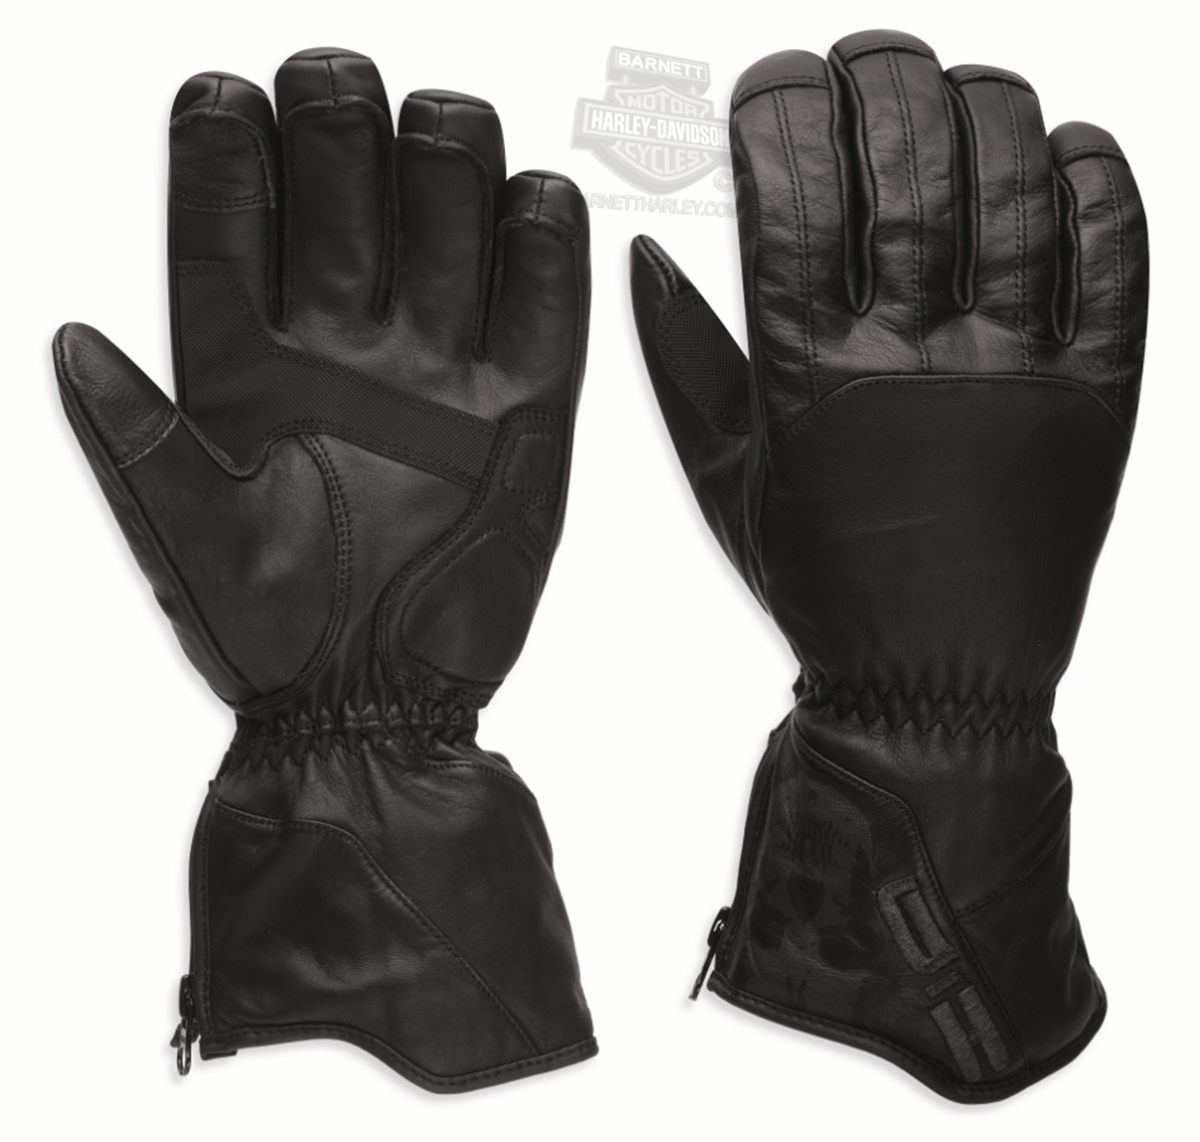 Mens leather gloves size 2x - Small Big Sizes Only Harley Davidson Mens Vagrant Waterproof